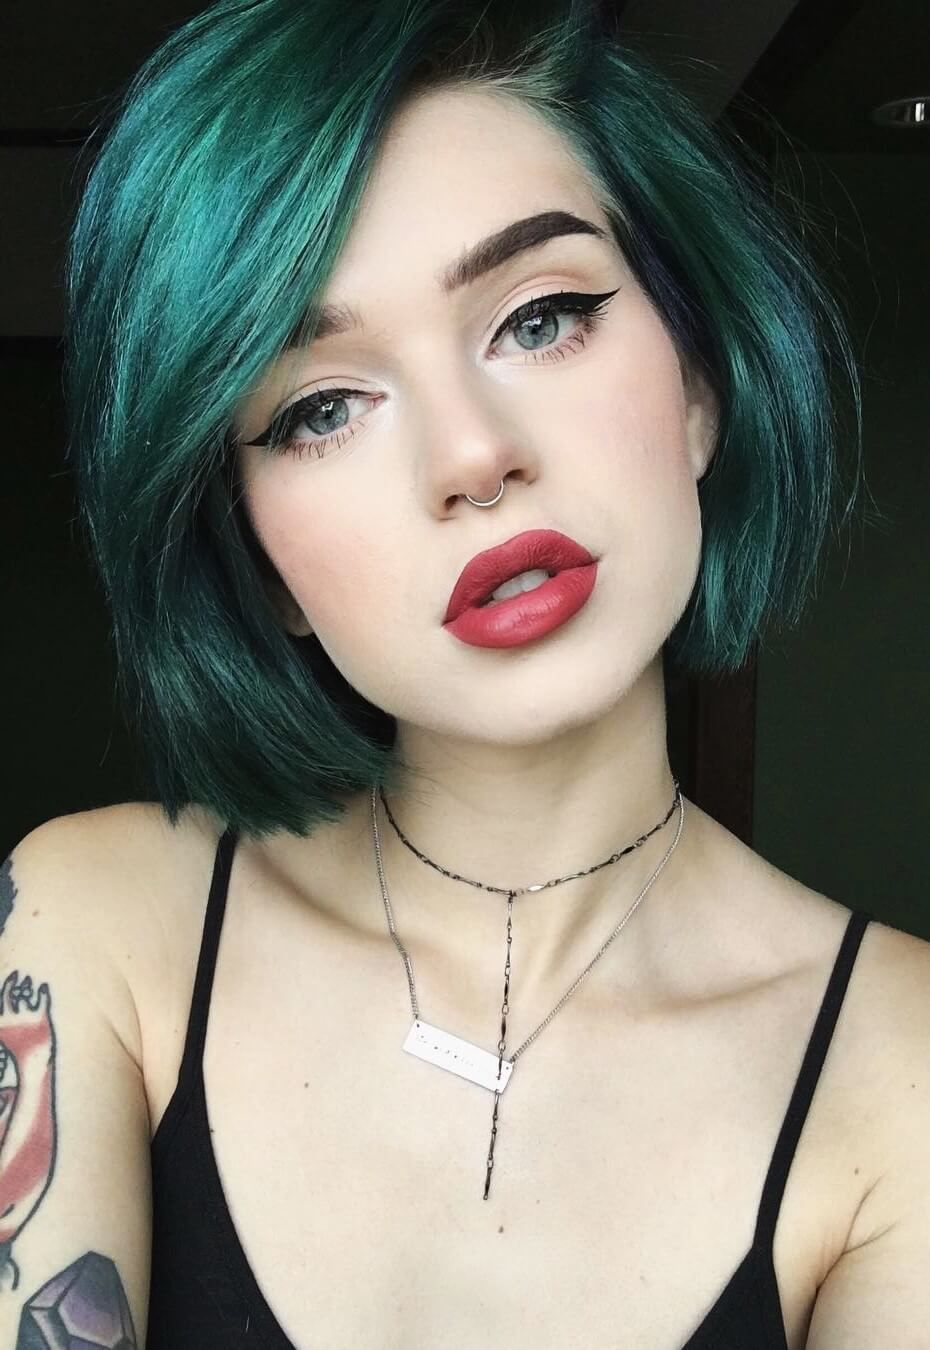 Looking to give your hair an edge then check out these edgy hair